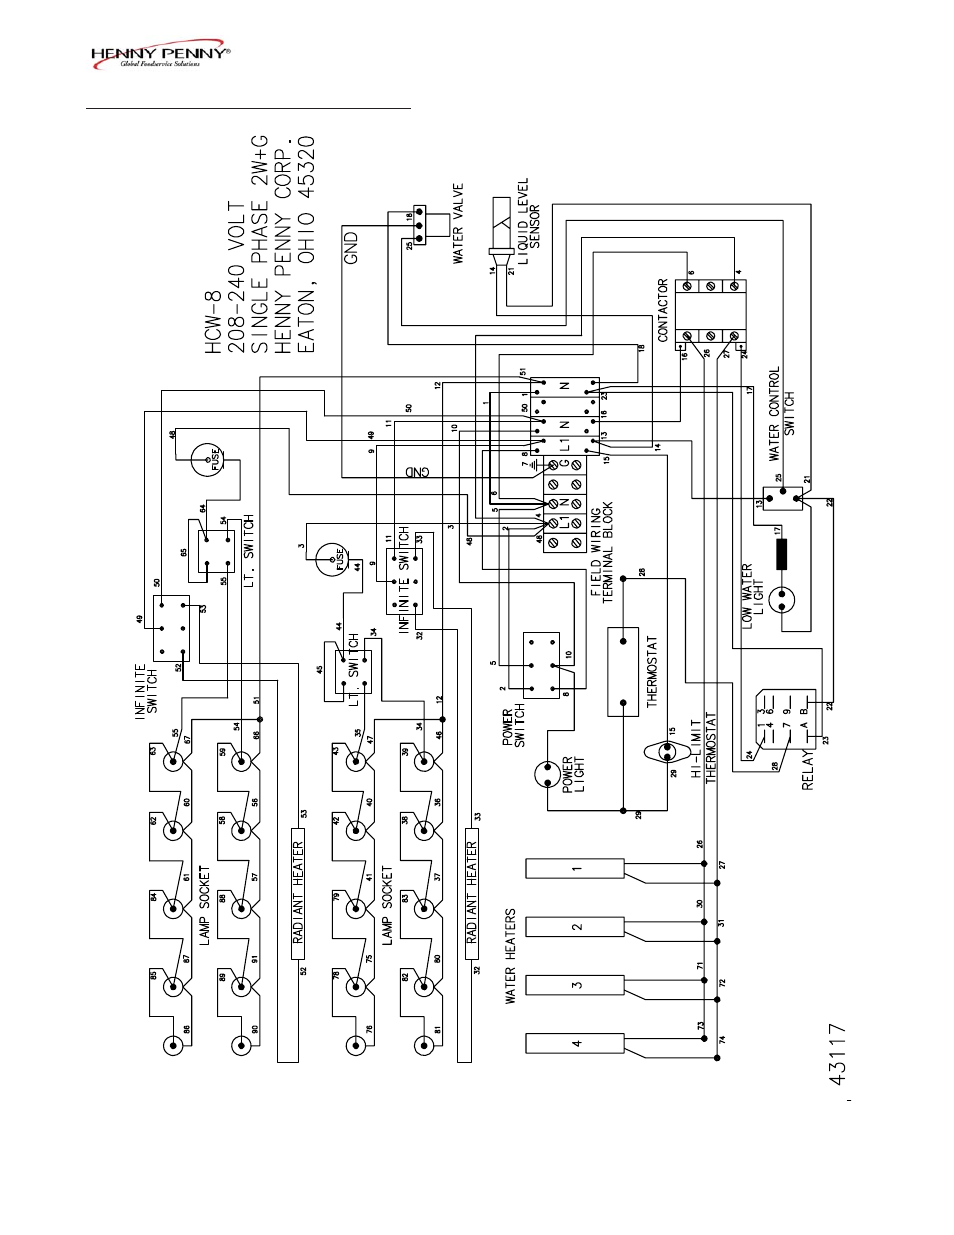 Henny Penny Wiring Diagram Free Download Fenwal Ignition Module 35 655921 001 Hcs 2 User Manual Page 39 59 Also For Hcw